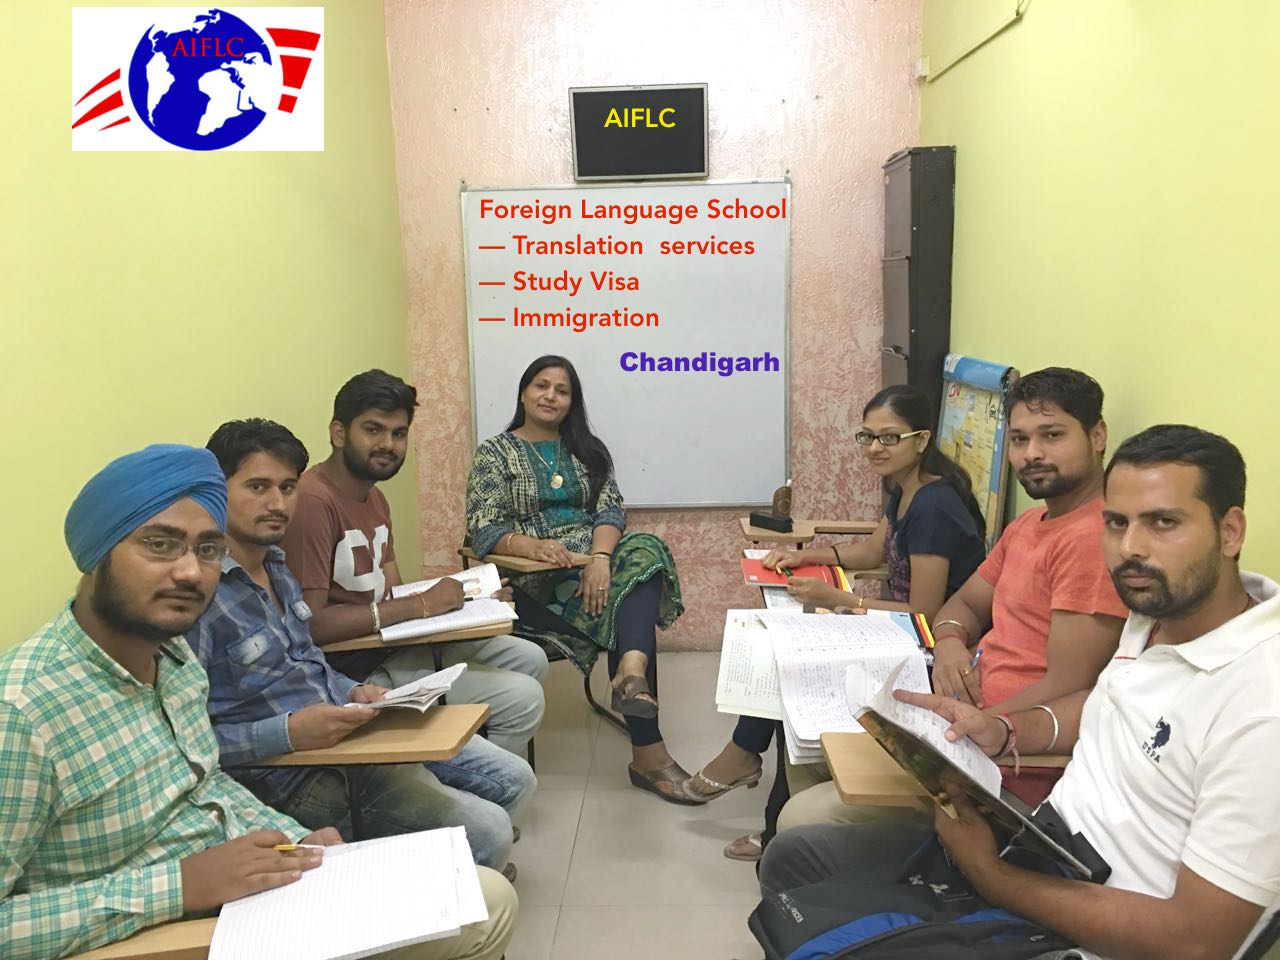 foreign languages  classes and translation services in chandigarh since 1999